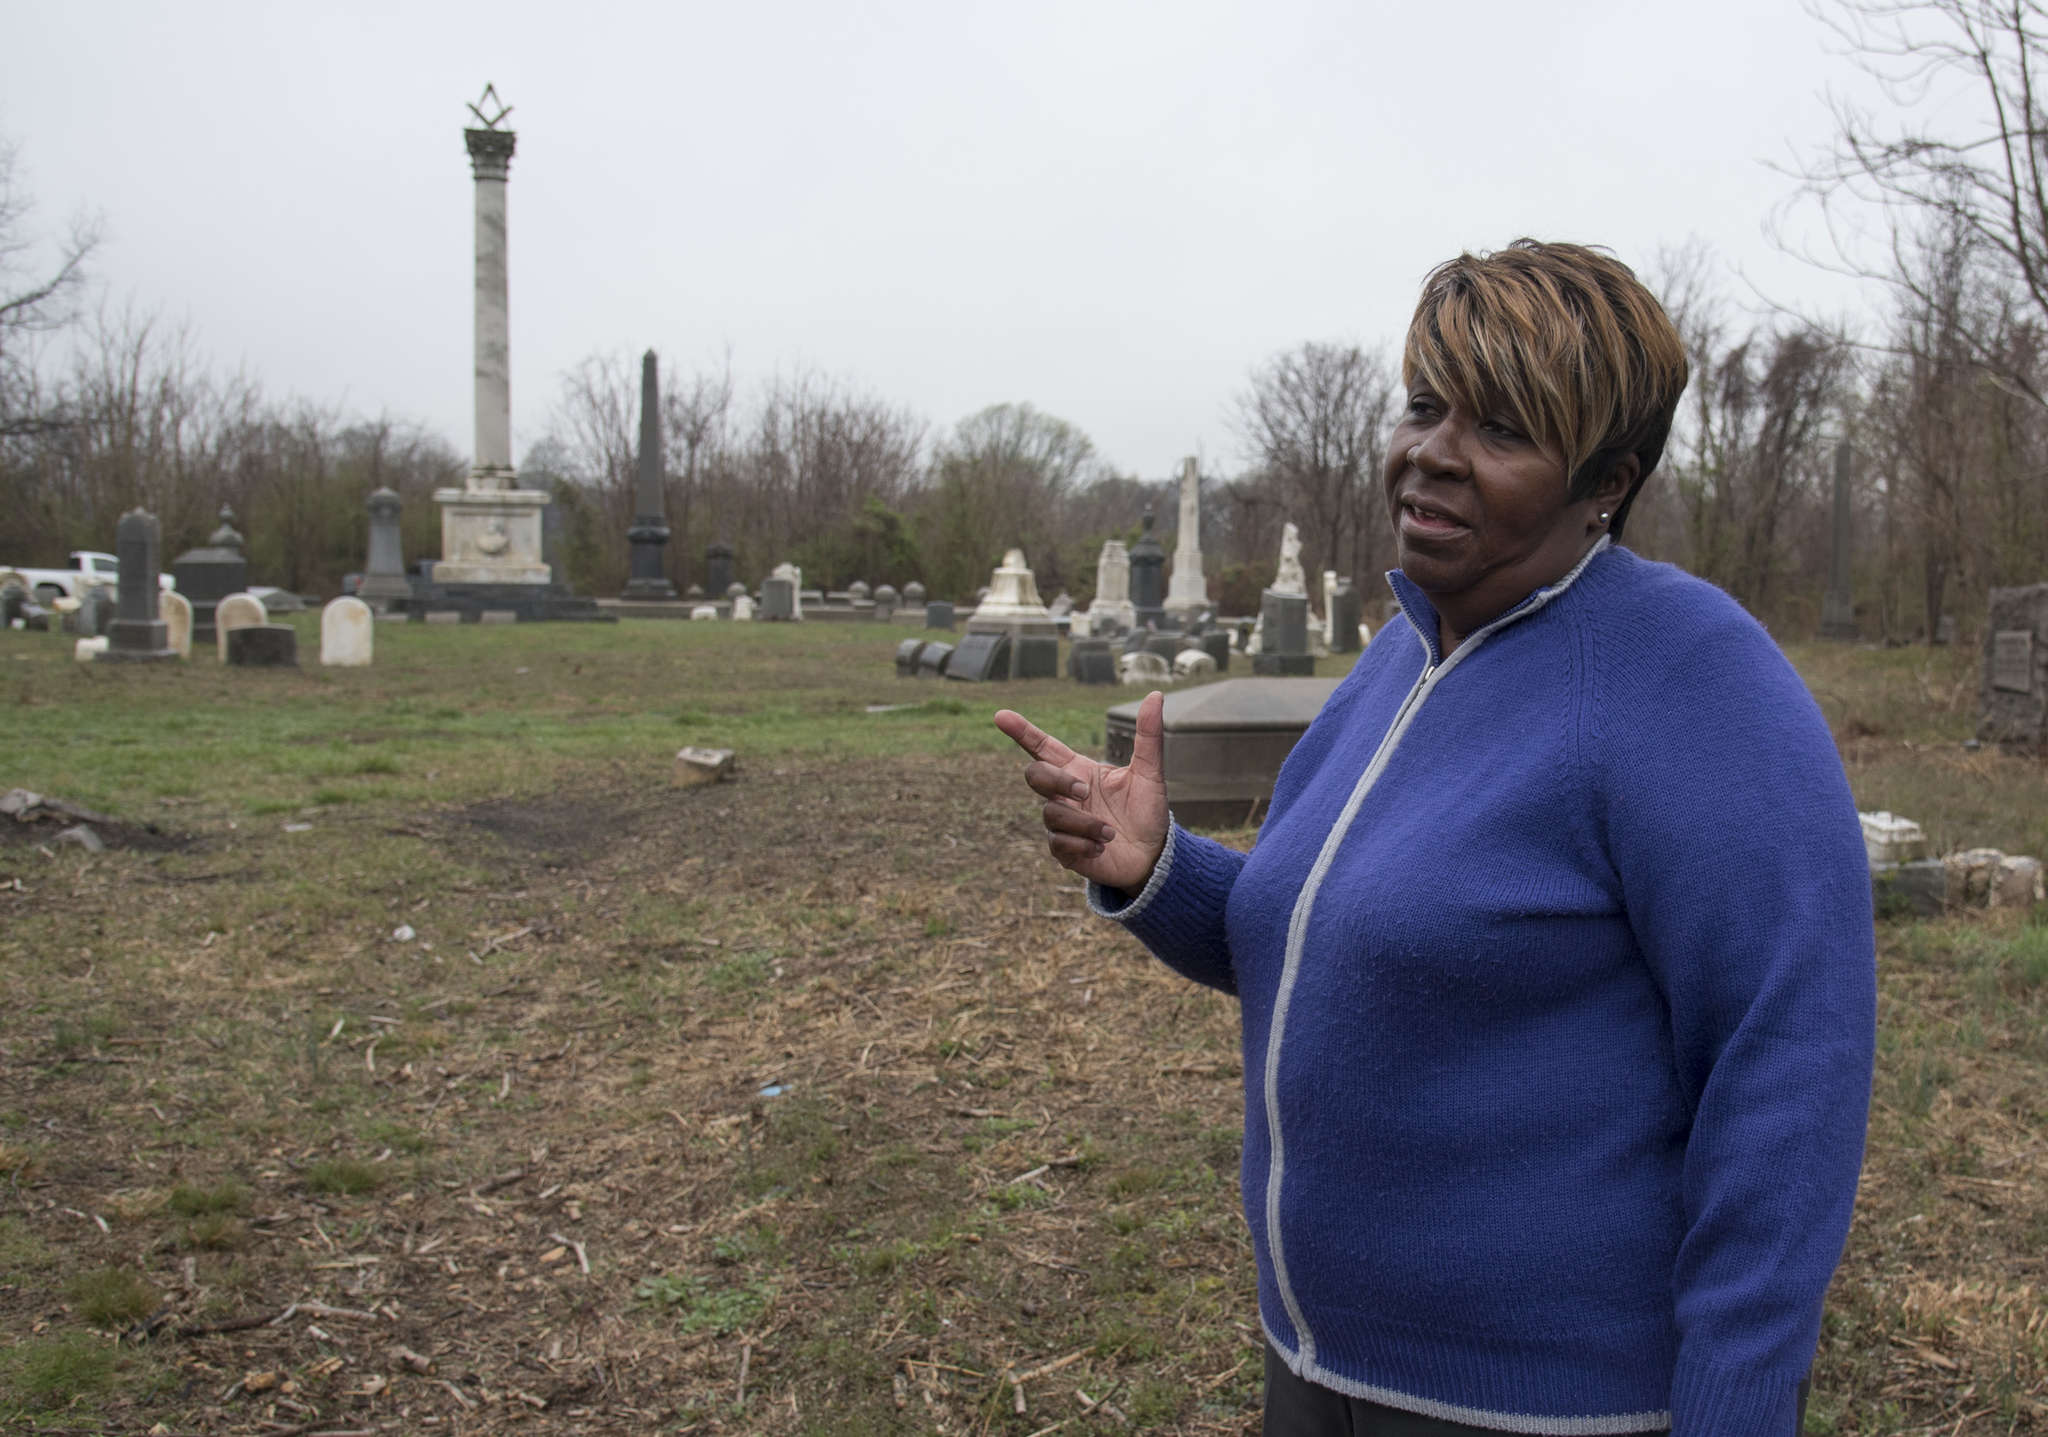 Paulette Rhone, president of the Friends of Mount Moriah Cemetery, talks about the efforts of her group to restore the grounds of the cemetery from decades of neglect and overgrowth.